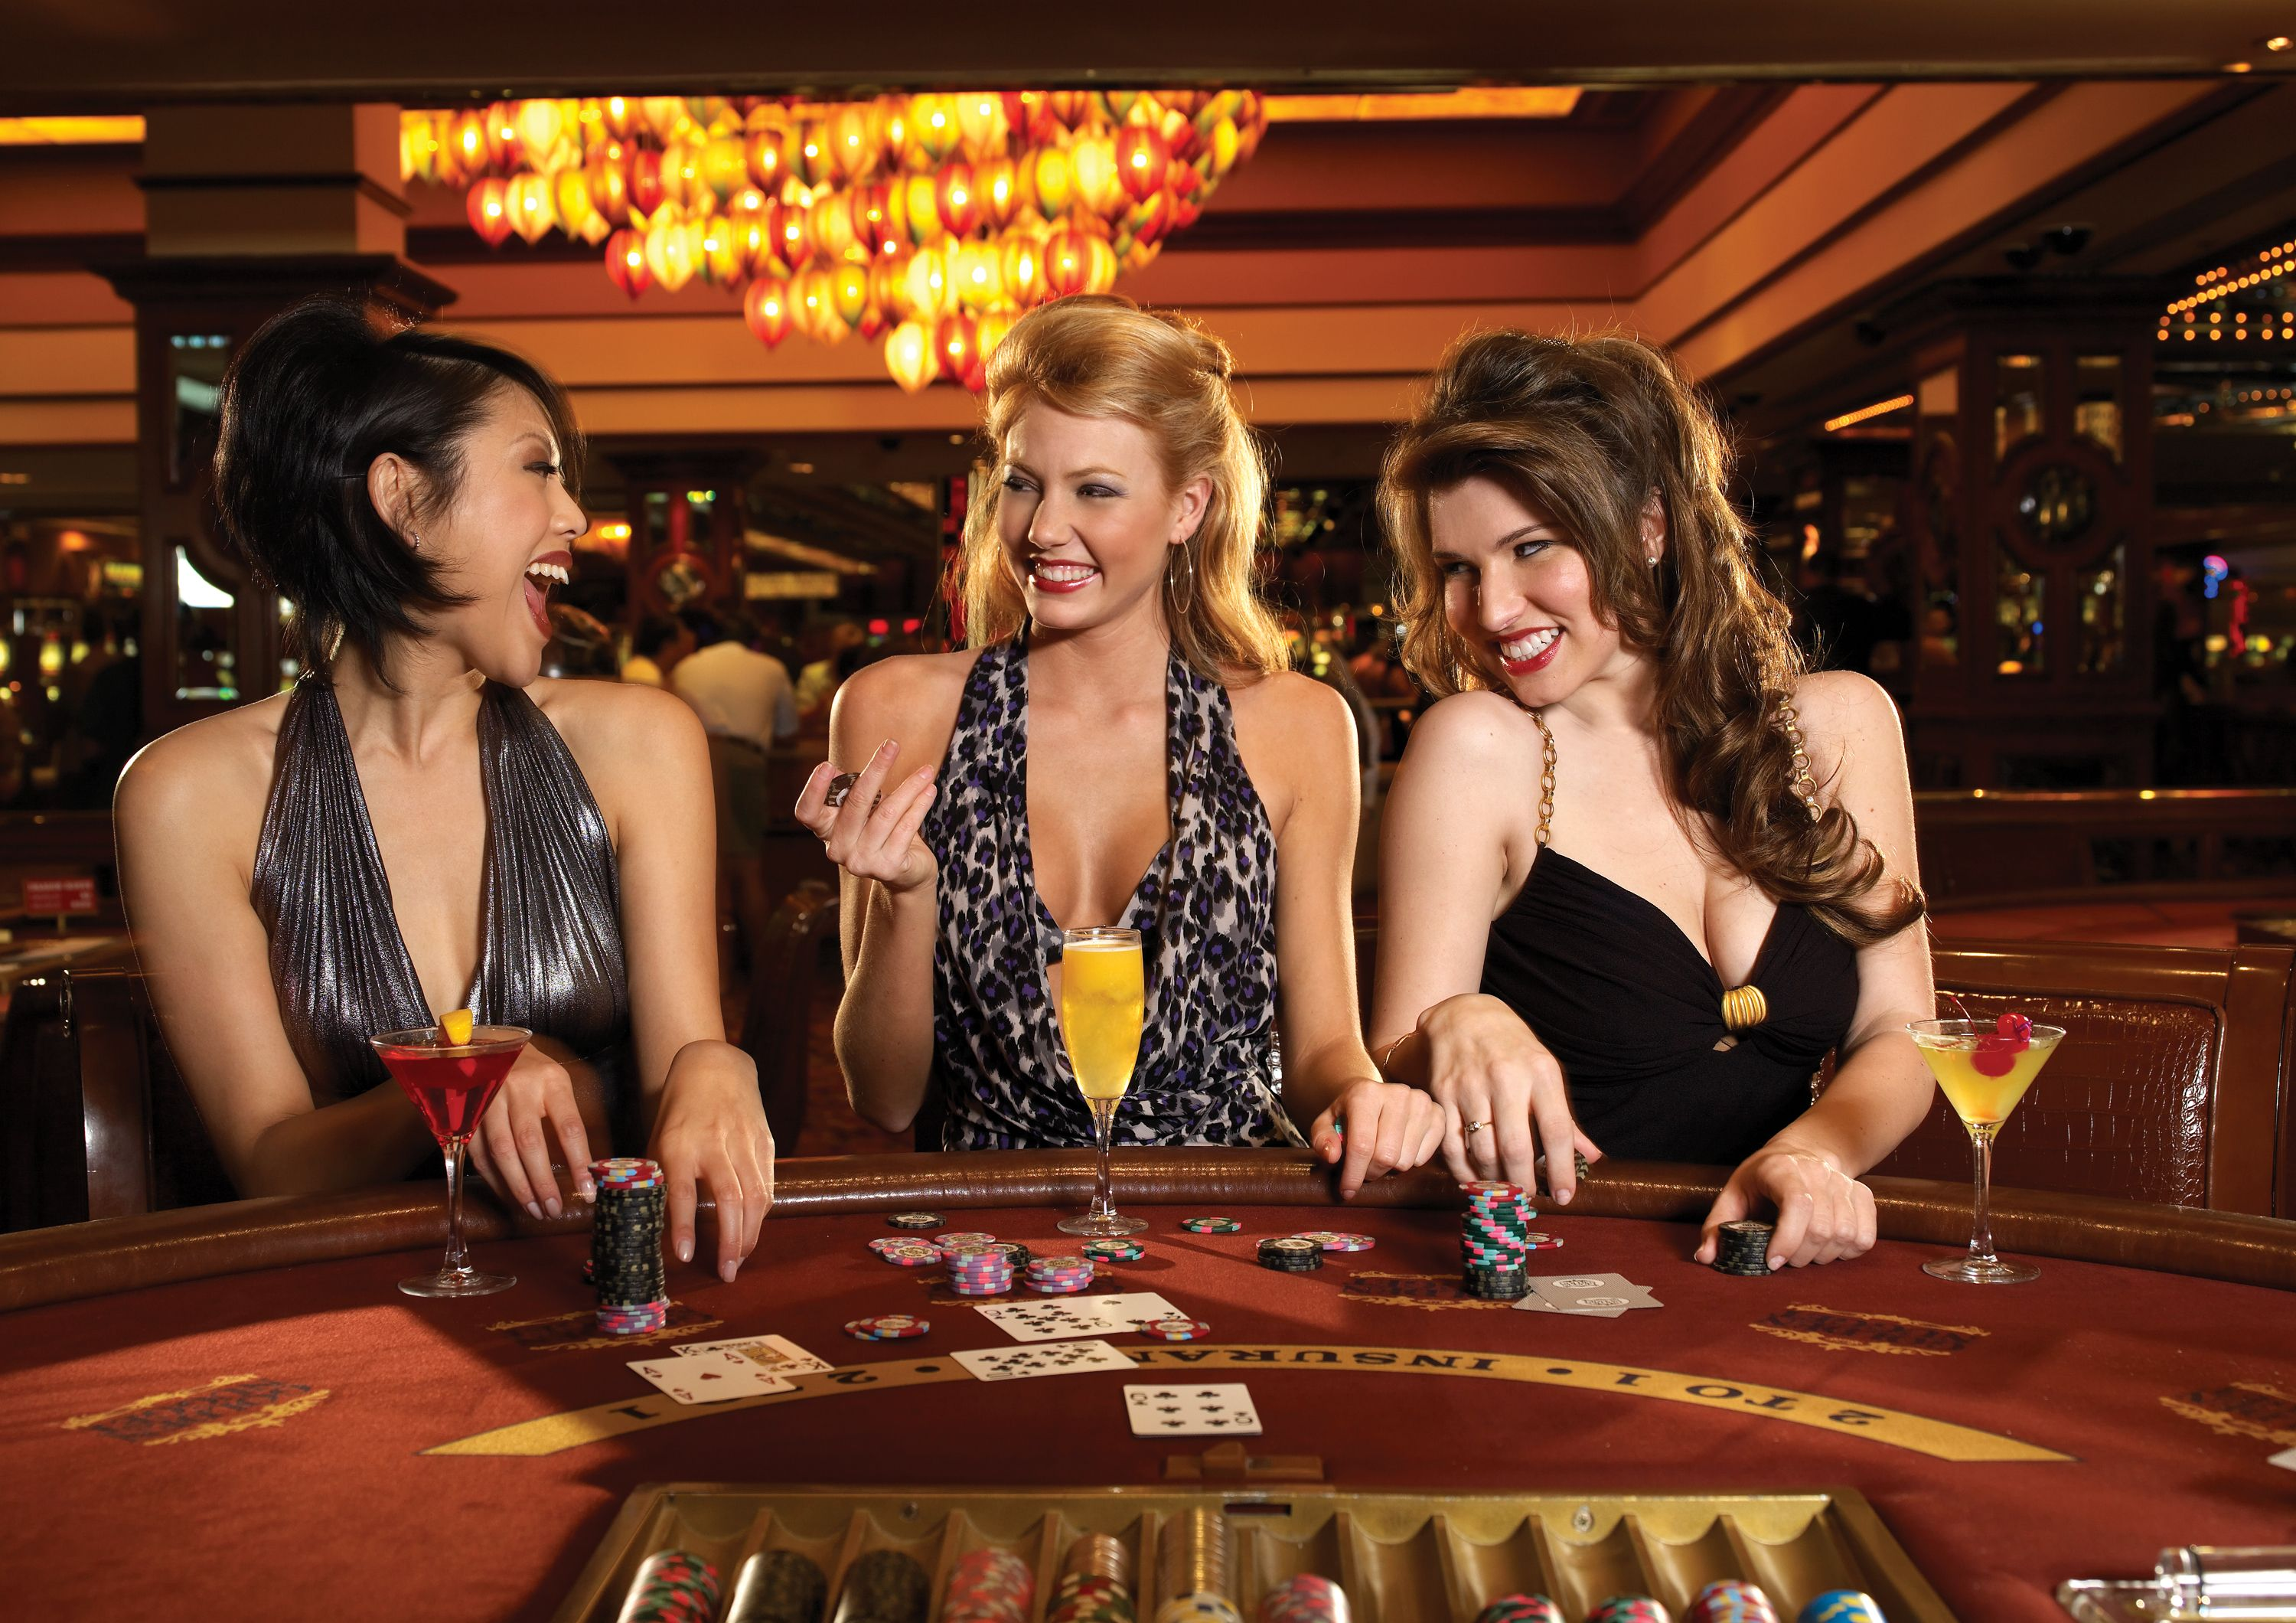 Golden Nugget Offers All Of Your Favorite Table Games Casino Las Vegas Vegas Casino Las Vegas